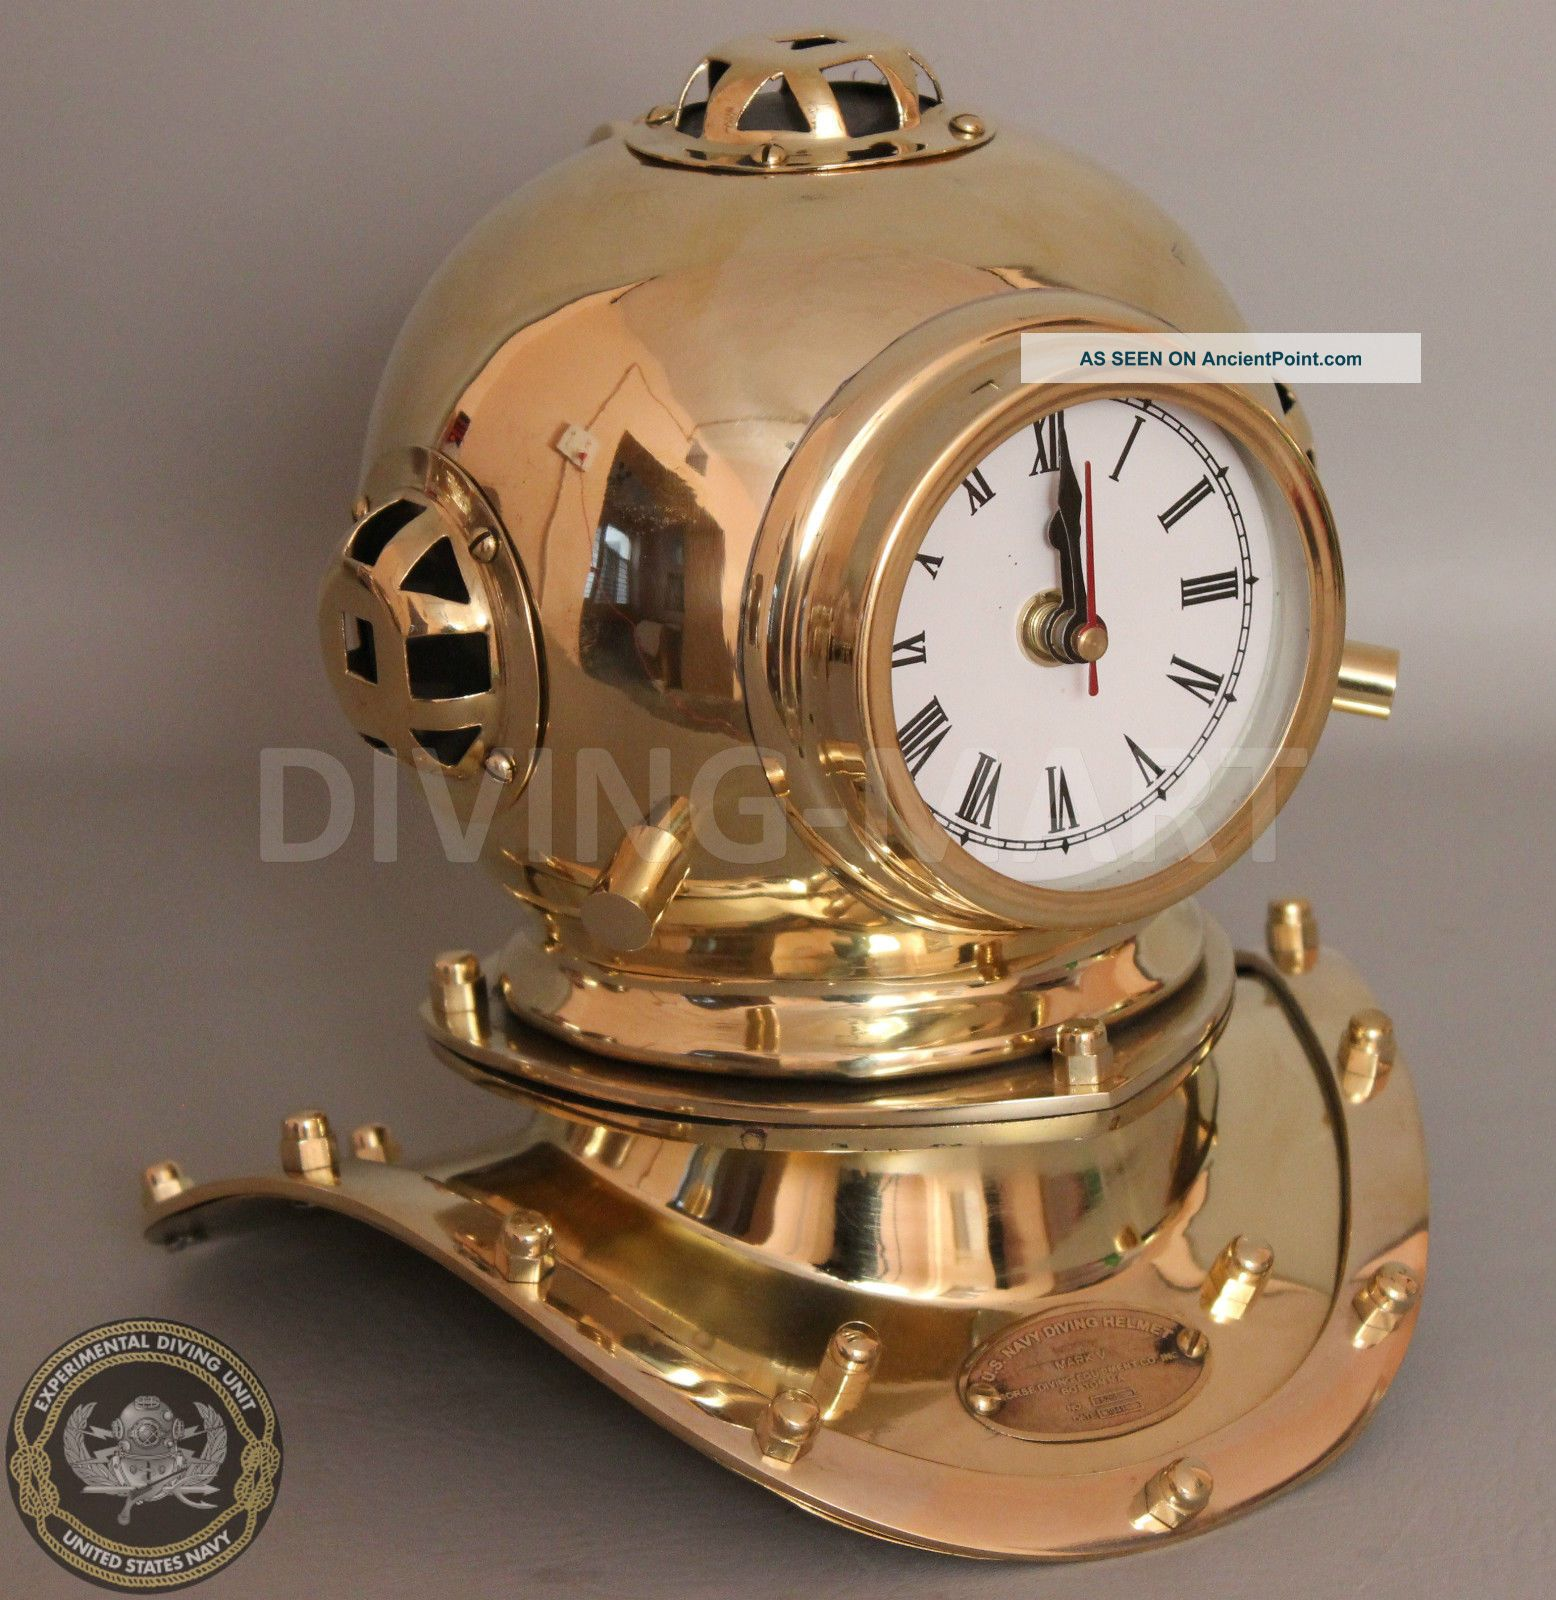 Collectible Full Brass Divers Helmet Clock Miniature Reproduction 8